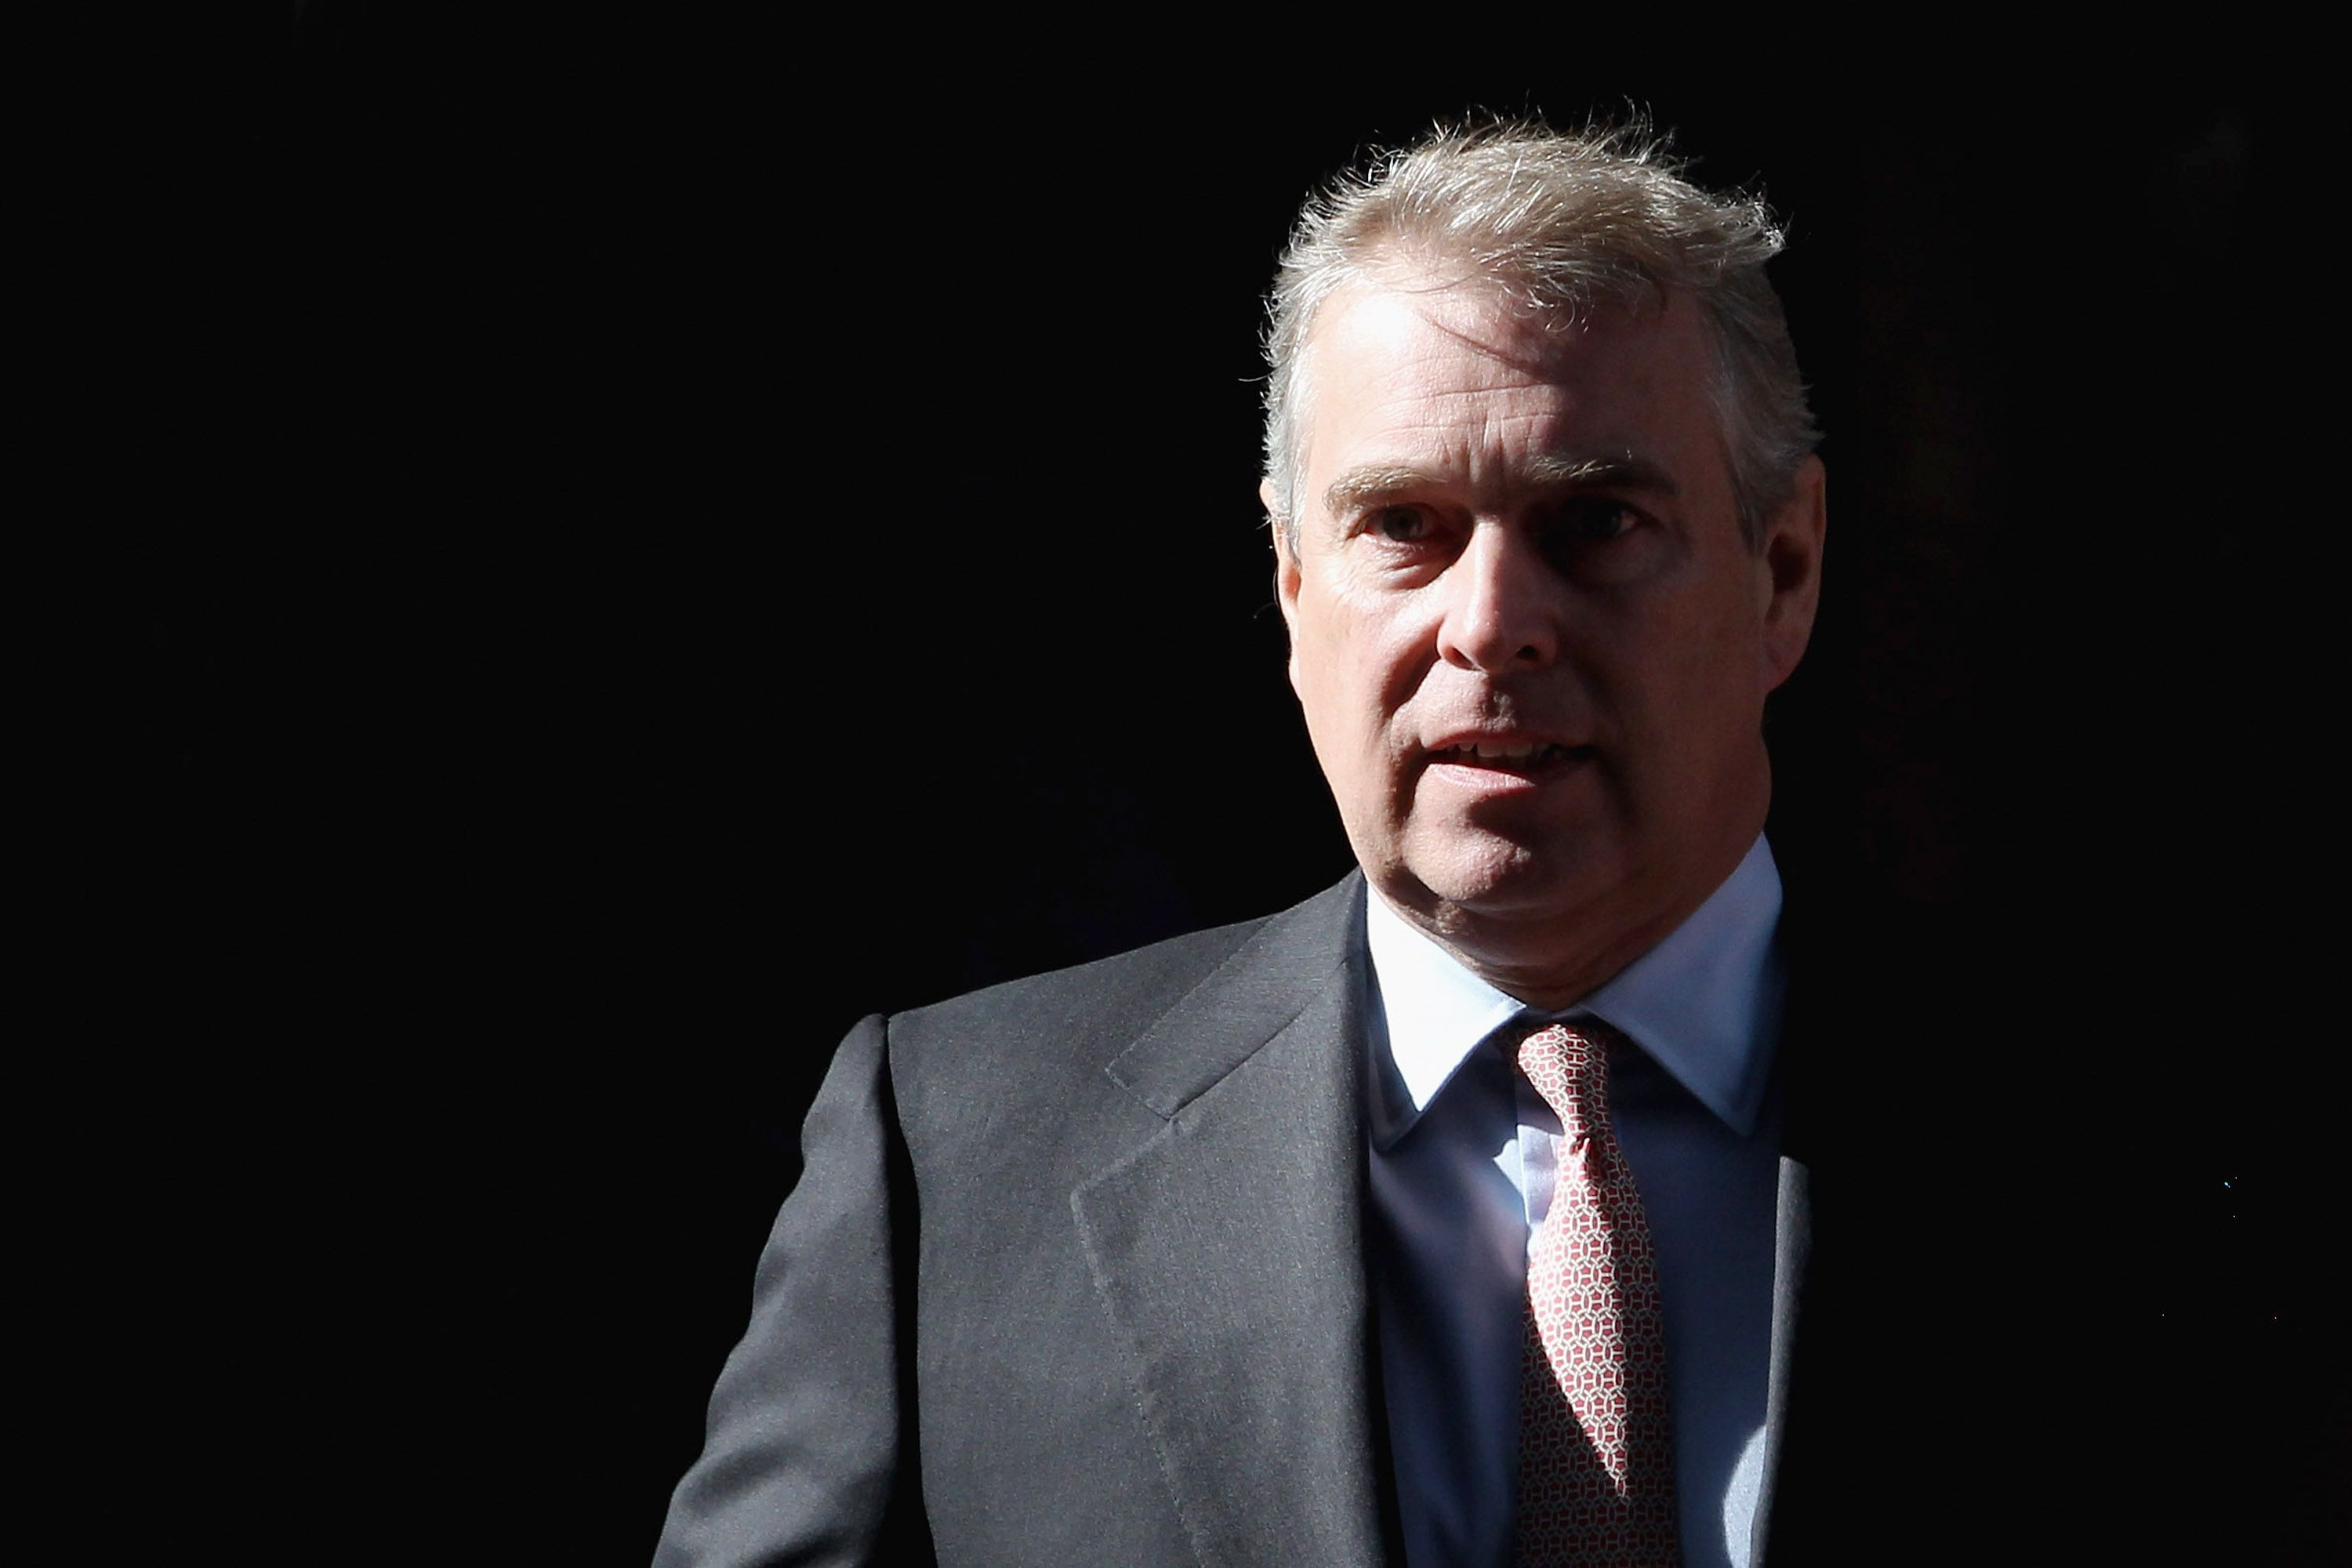 Prince Andrew allegedly stayed with fashion executive accused of rape